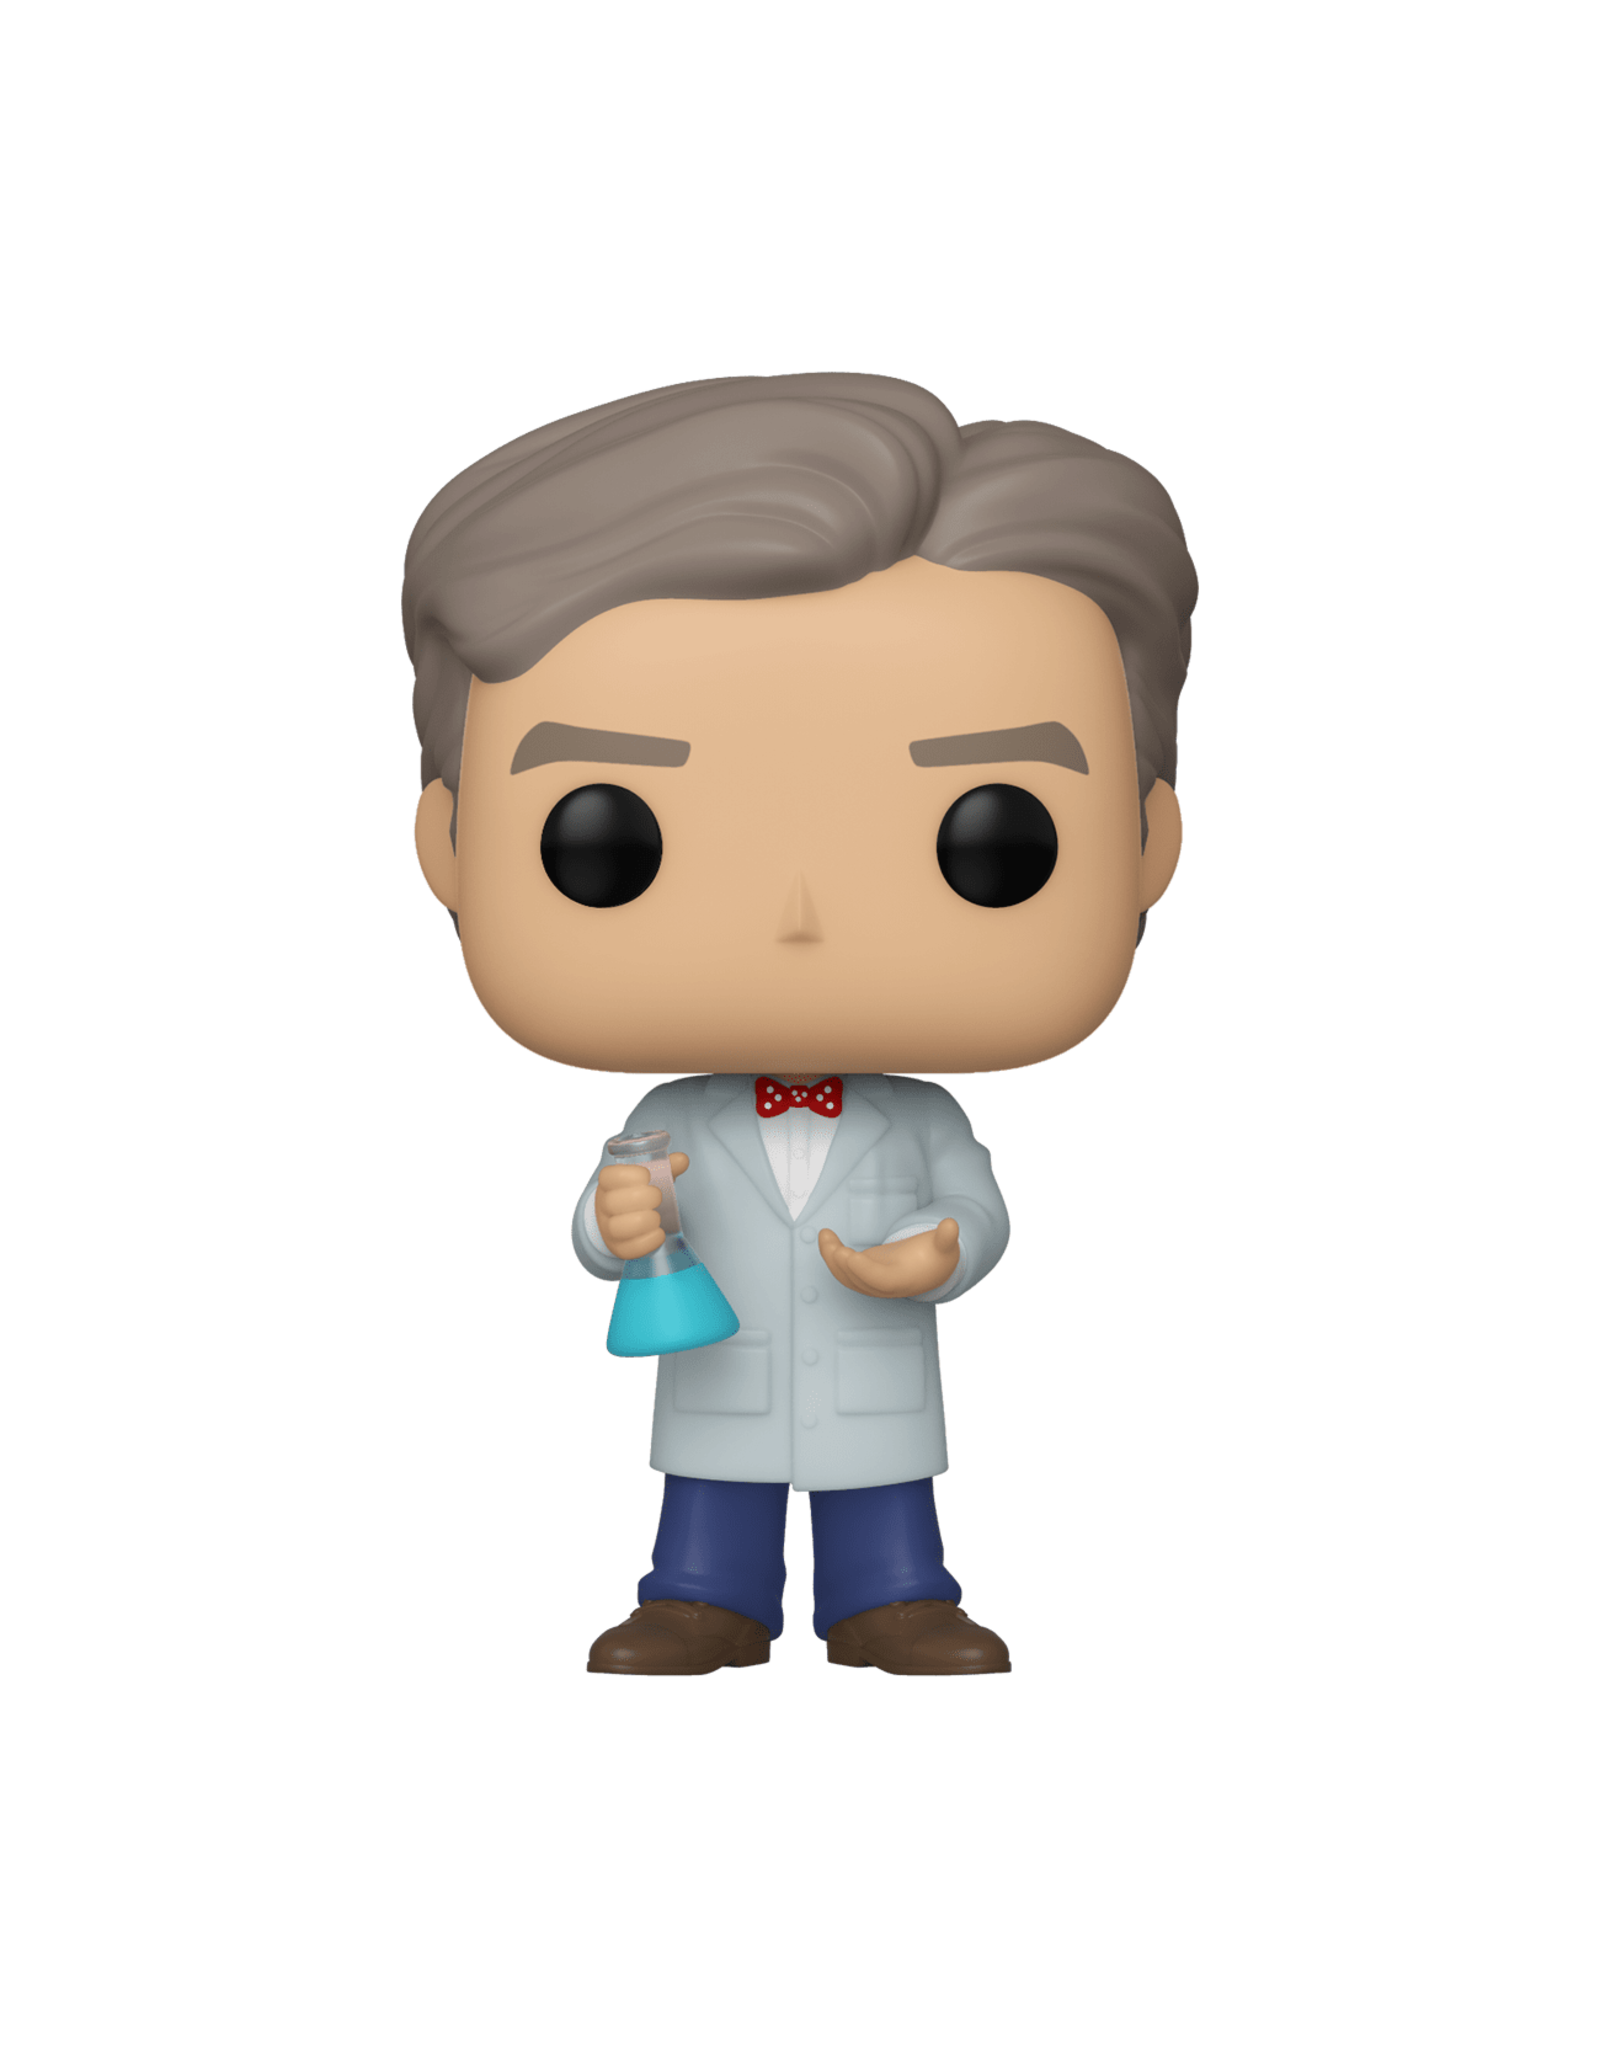 FUNKO POP ICONS BILL NYE VINYL FIG